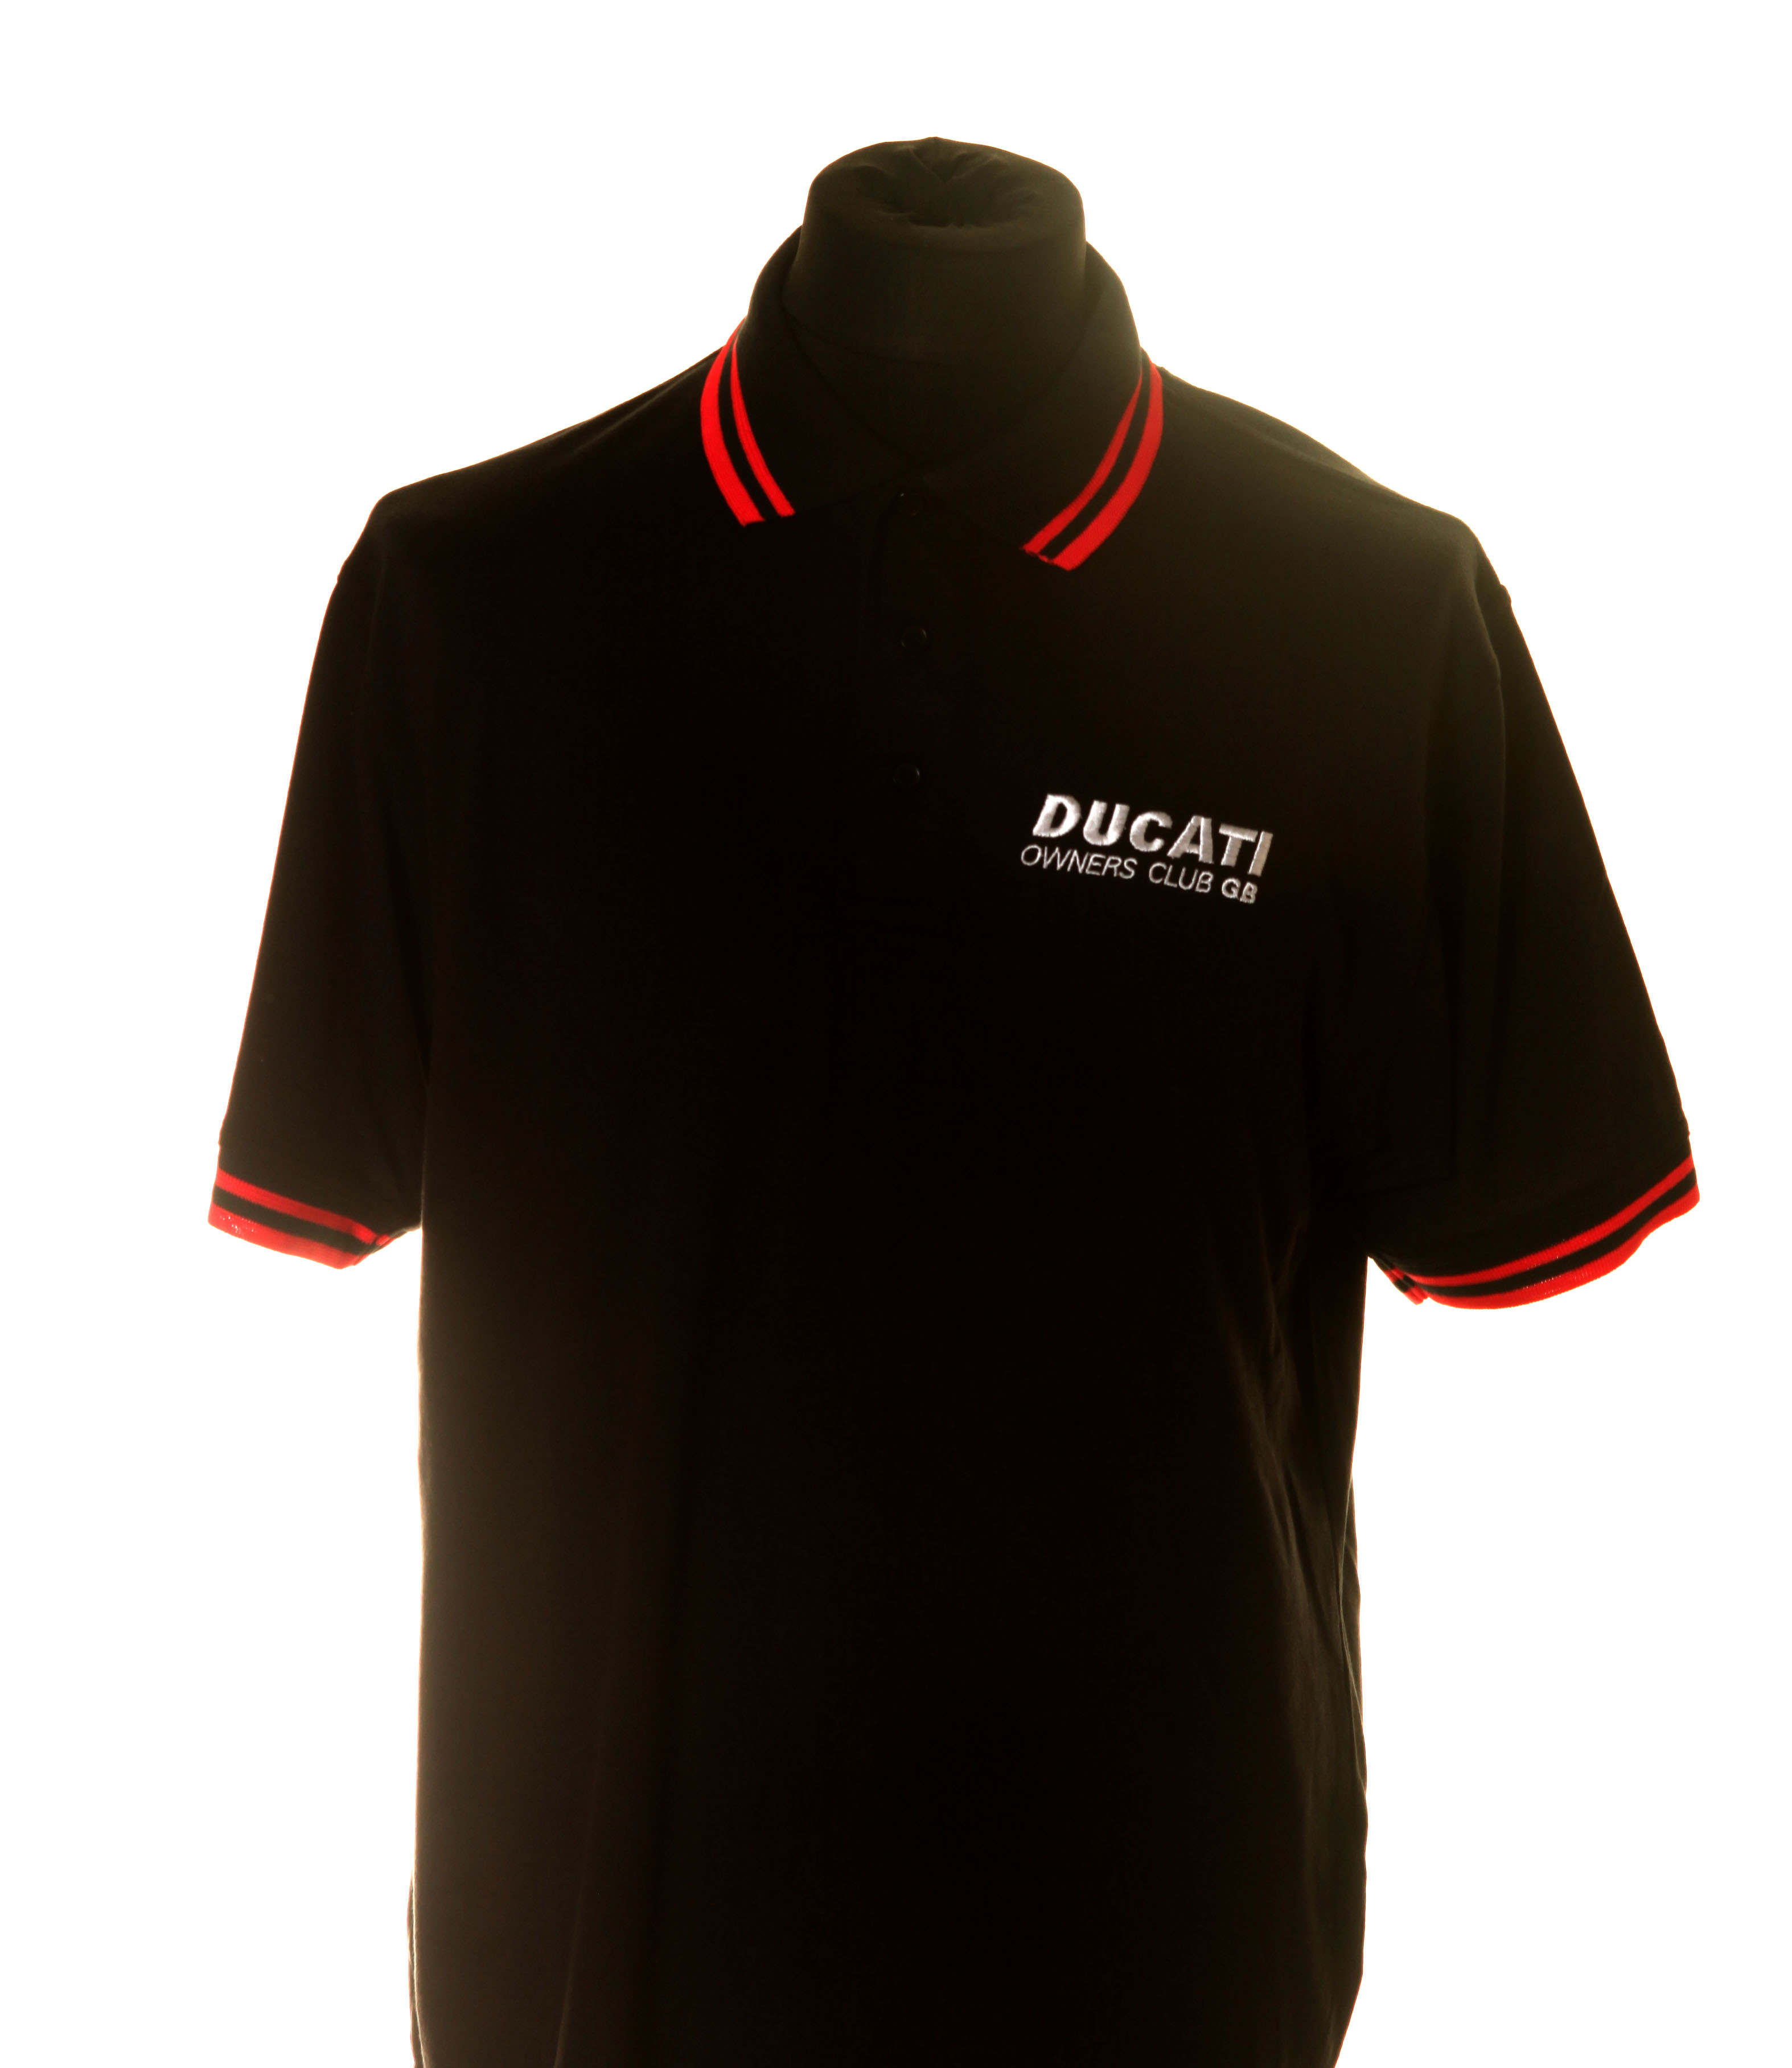 DOC GB Black/Red Adult Polo Shirt